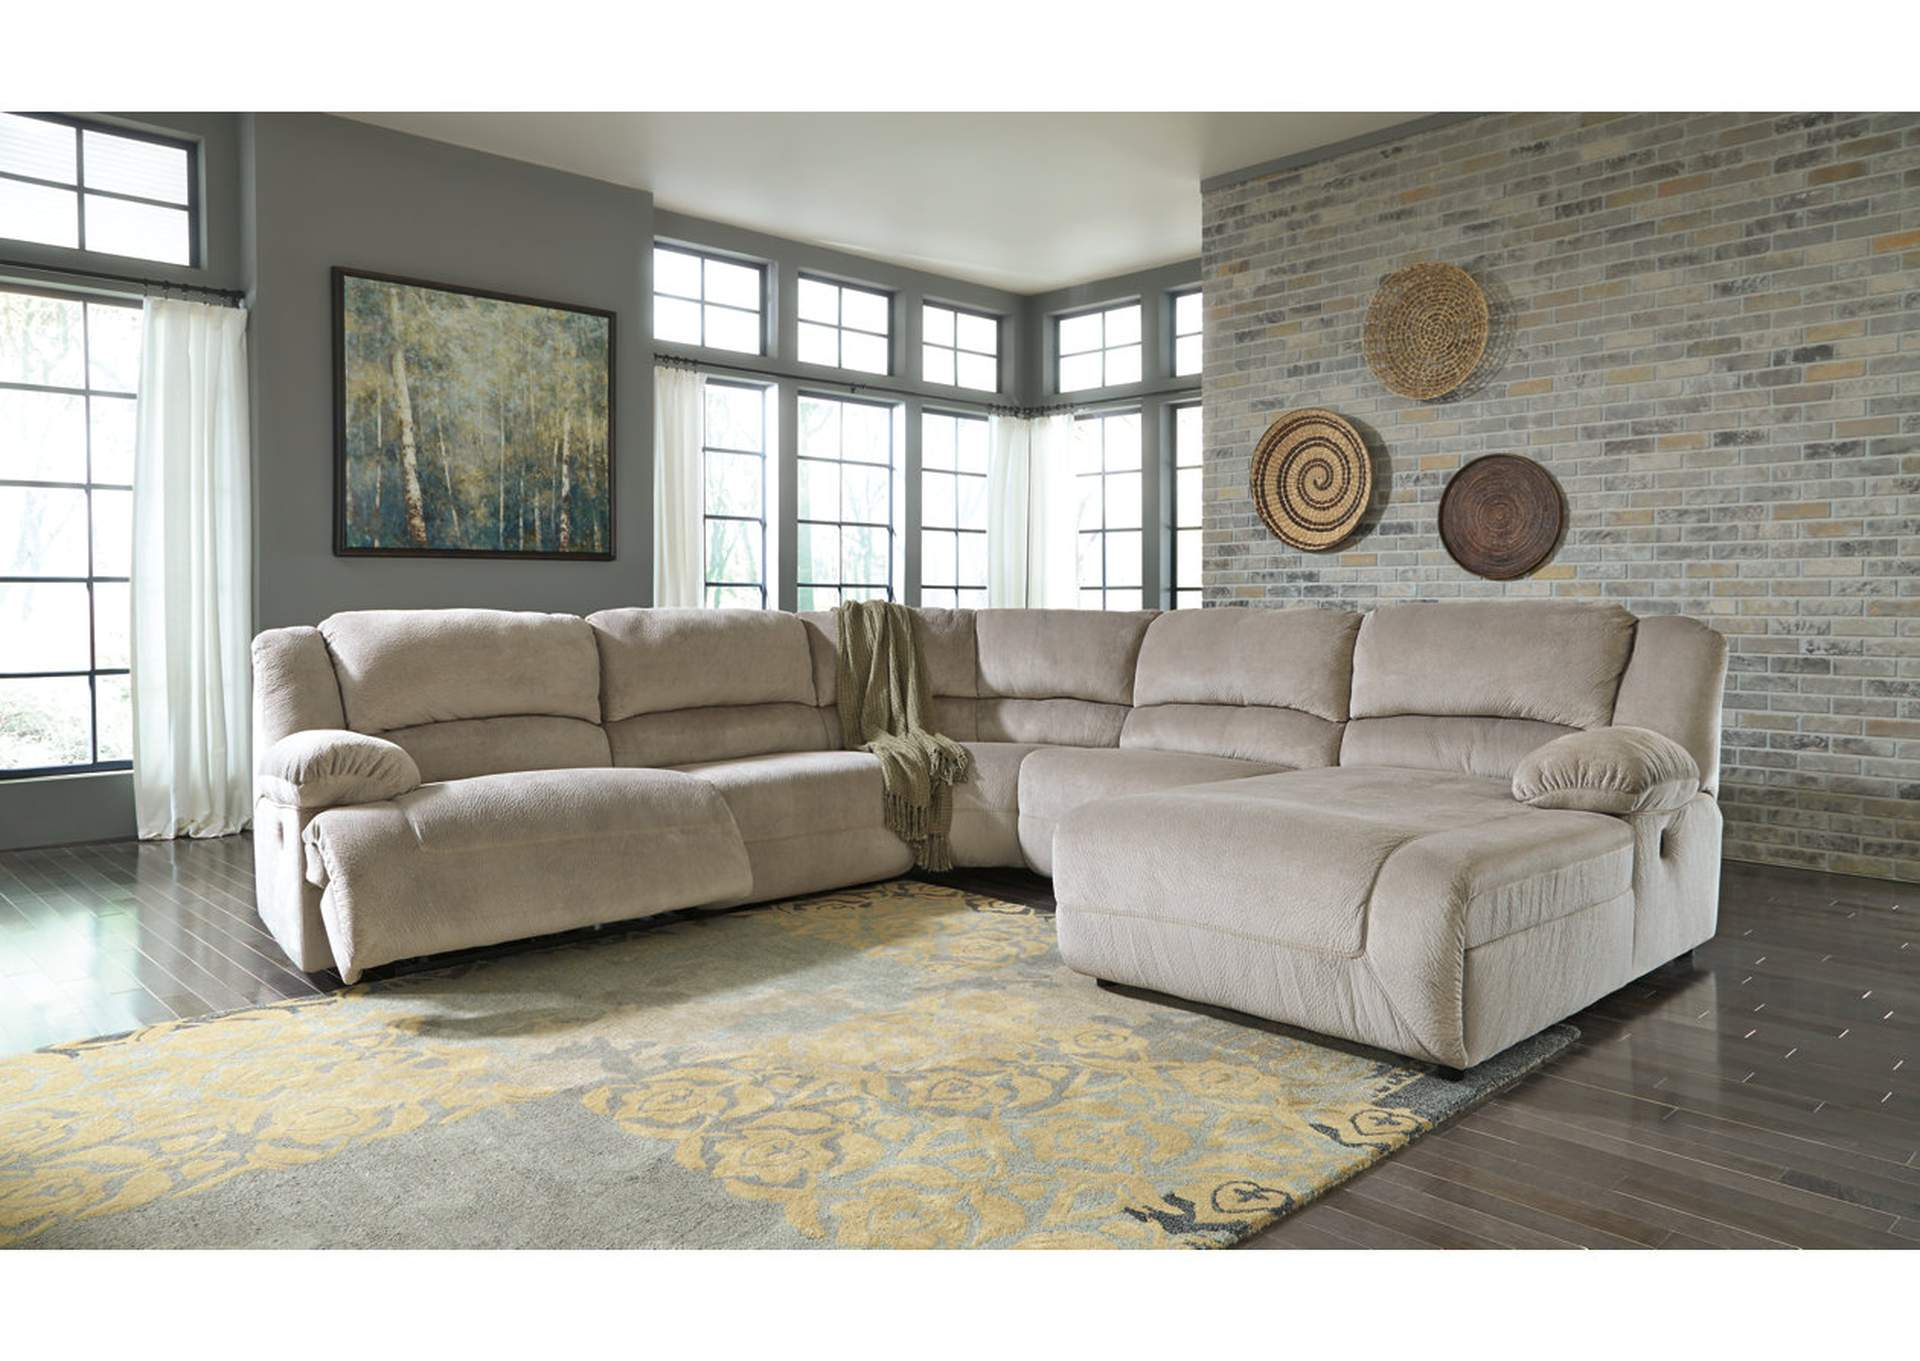 Toletta Granite Zero Wall Power Reclining Console Sectional w/Right Facing Chaise,Signature Design By Ashley